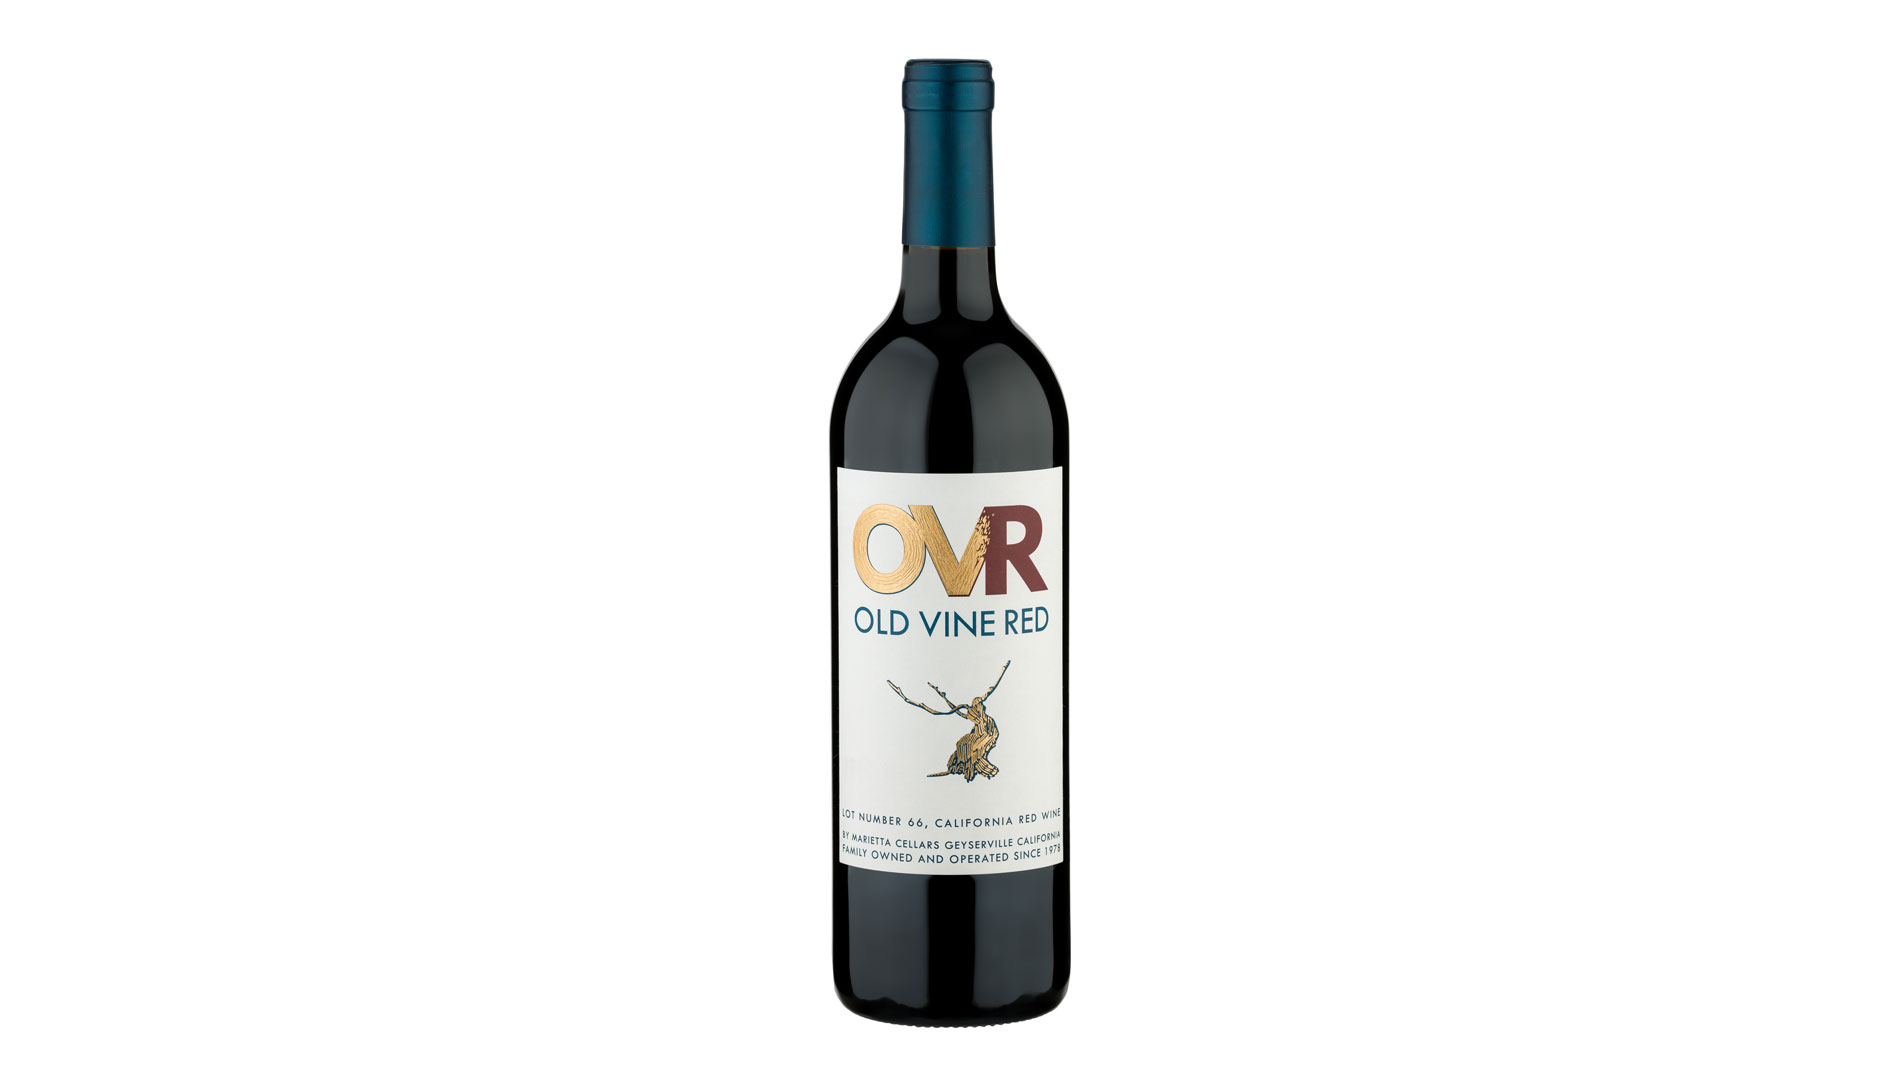 Marietta Old Vine Red Lot 66